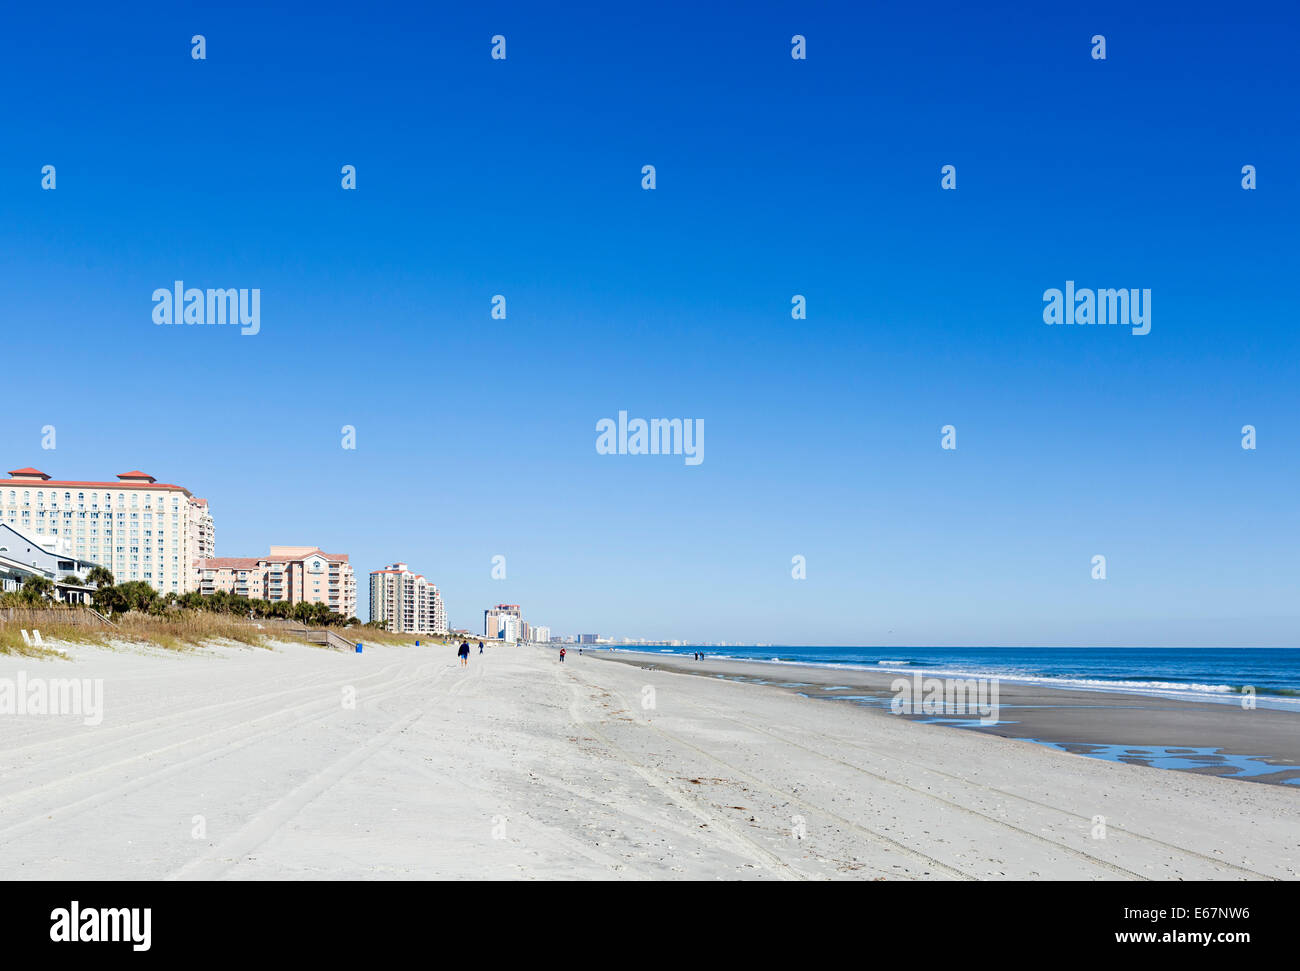 The northern end of Myrtle Beach, South Carolina, USA - Stock Image